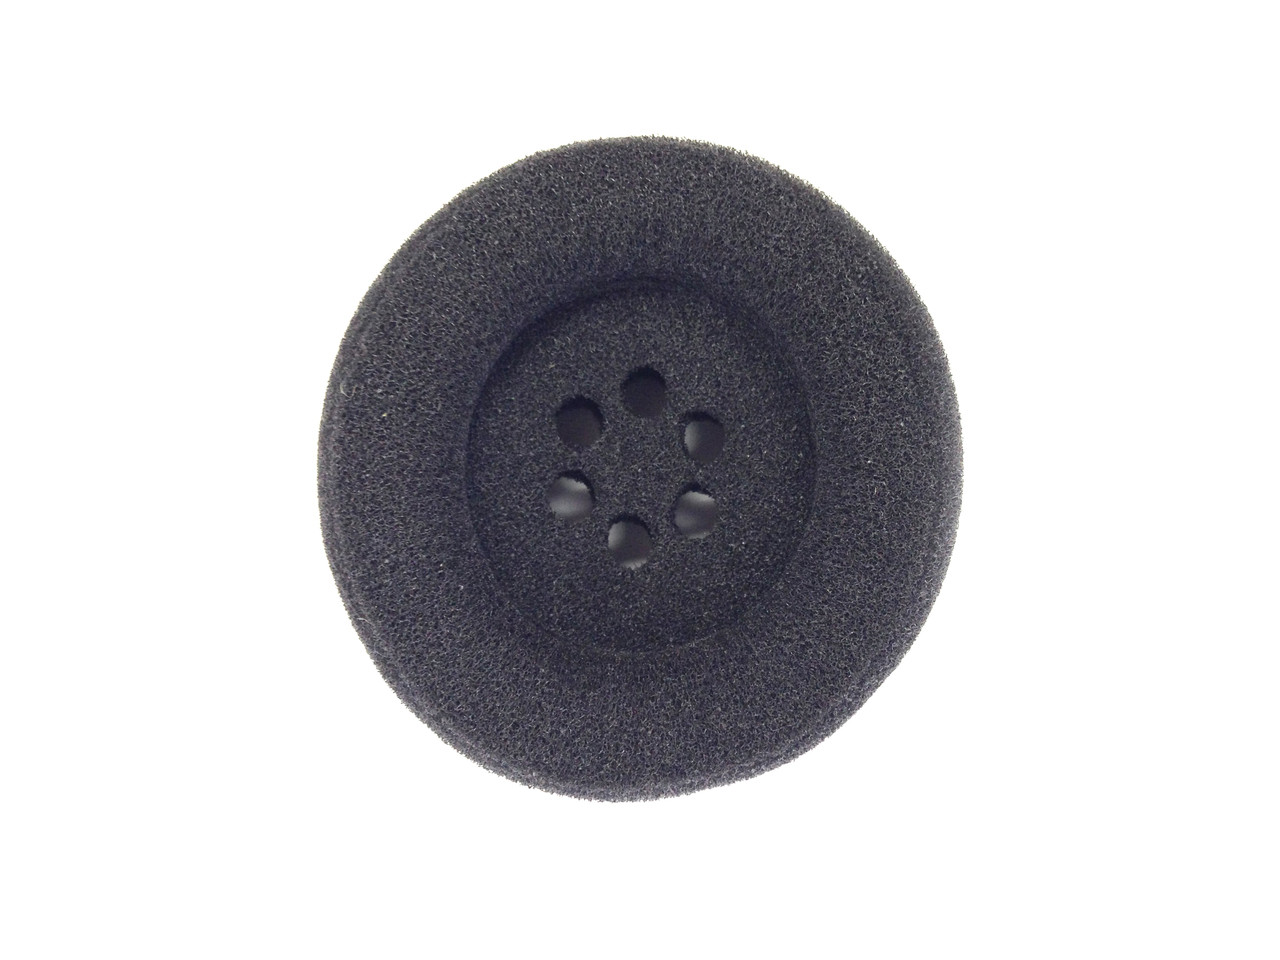 Polaris Supersoft Ear Cushion for Plantronics Headsets